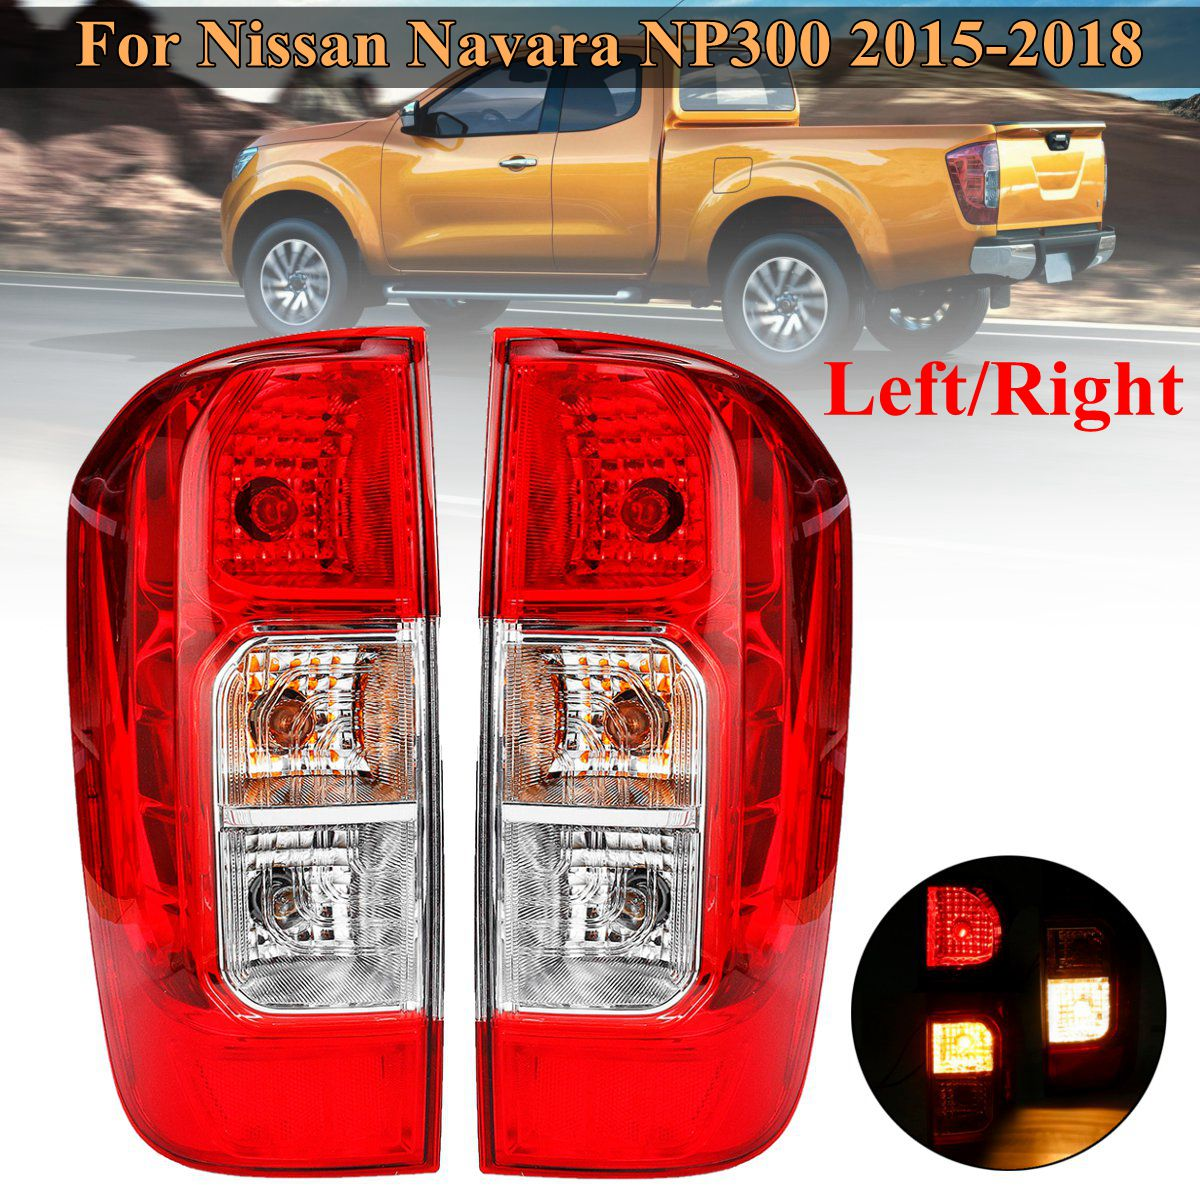 Car Rear Tail Light Red Left/Right for Nissan Navara NP300 2015-2019  Frontier 2018-2019